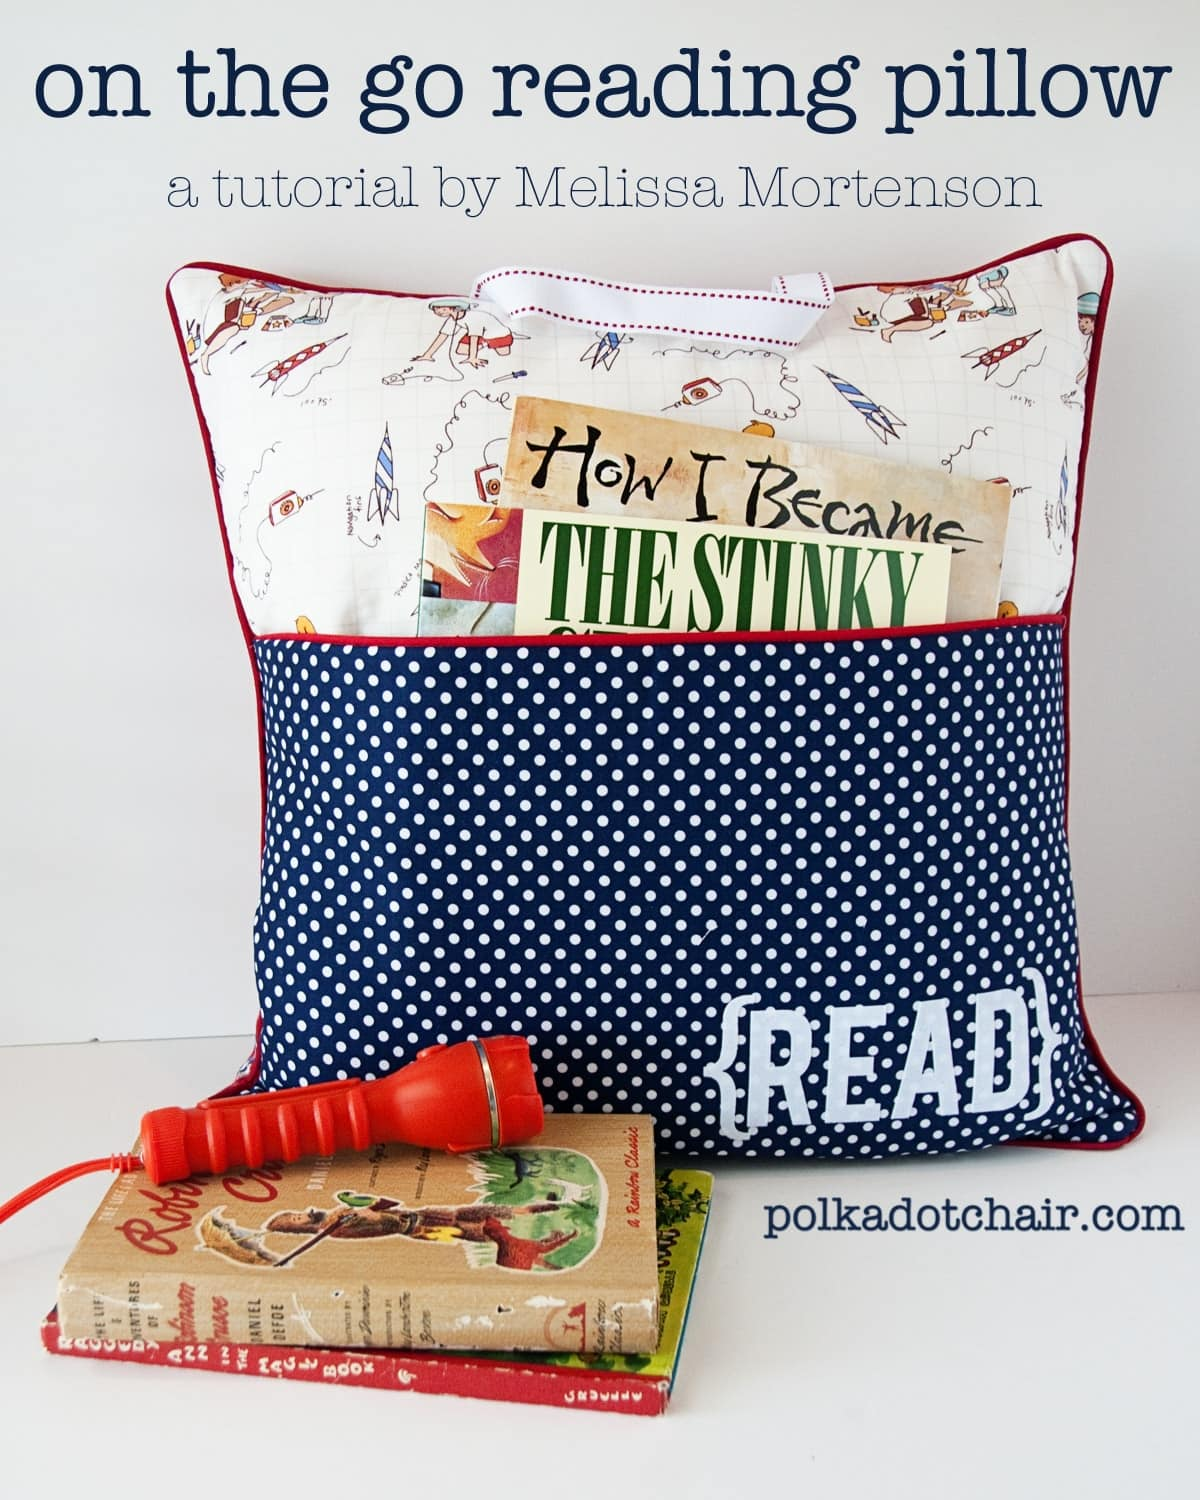 Home Etc Design Quarter On The Go Reading Pillow Tutorial The Polkadot Chair